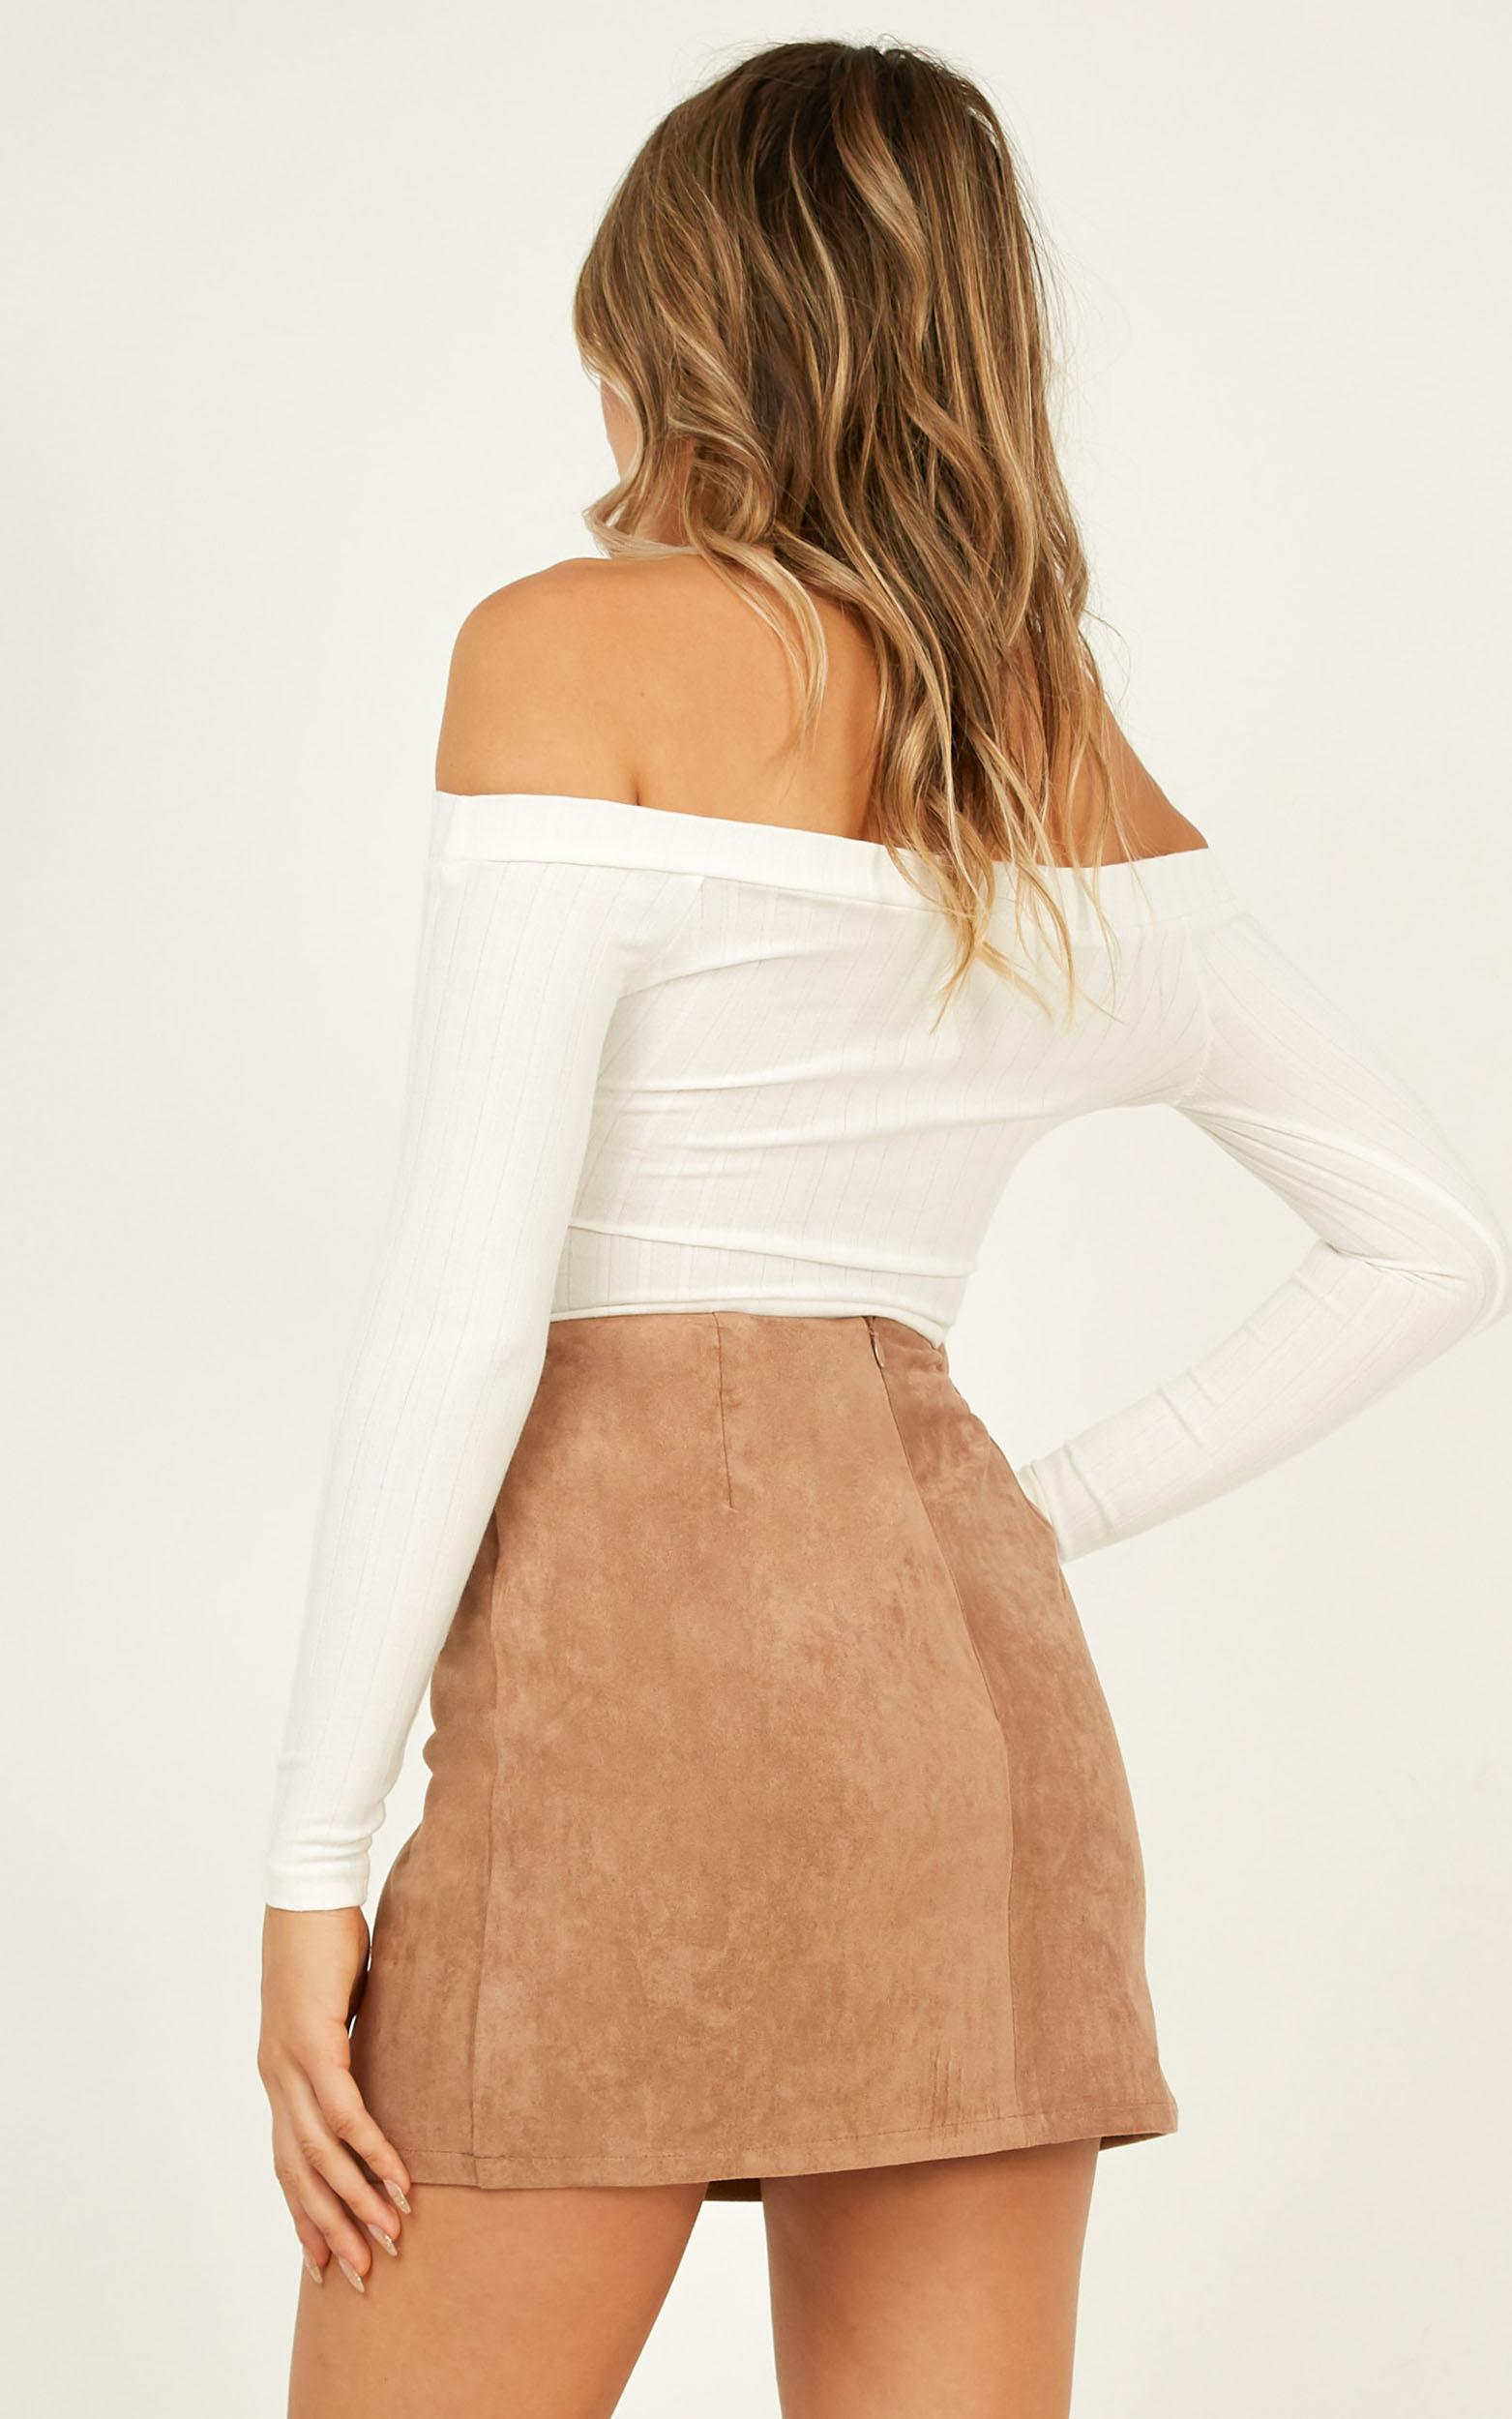 Wait In Line Skirt in taupe suedette - 6 (XS), Taupe, hi-res image number null